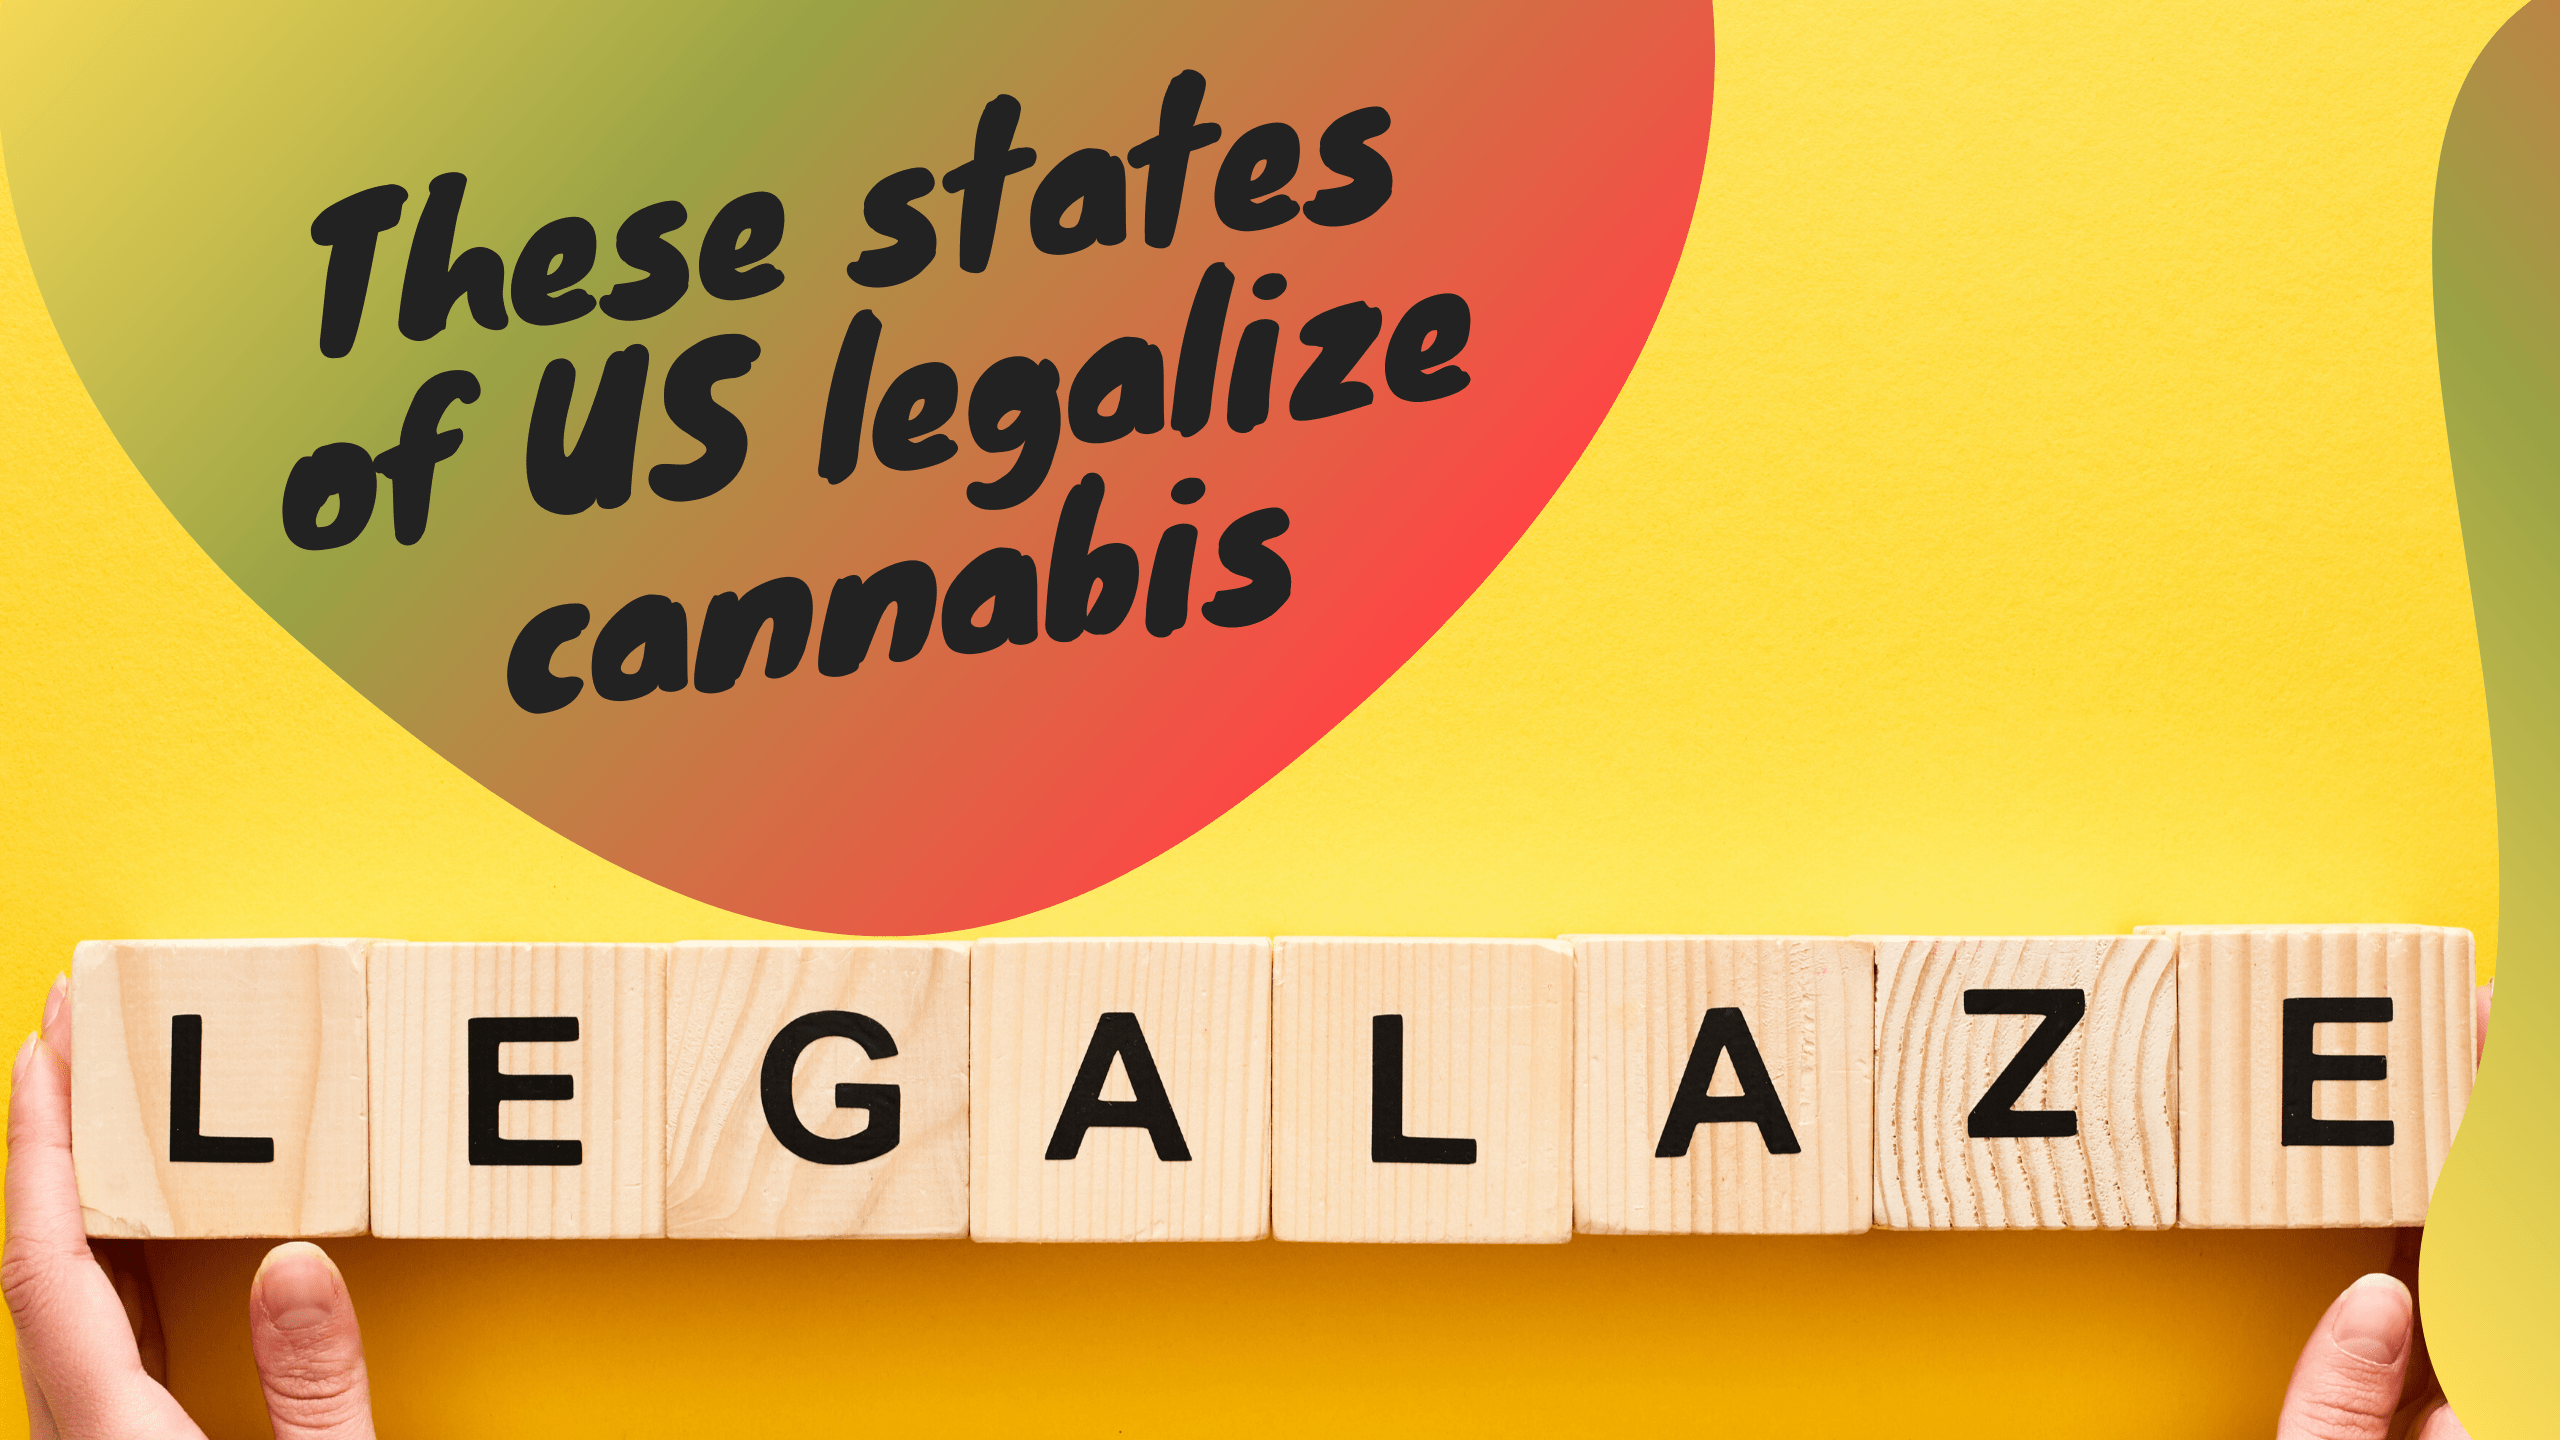 These states of US legalize cannabis